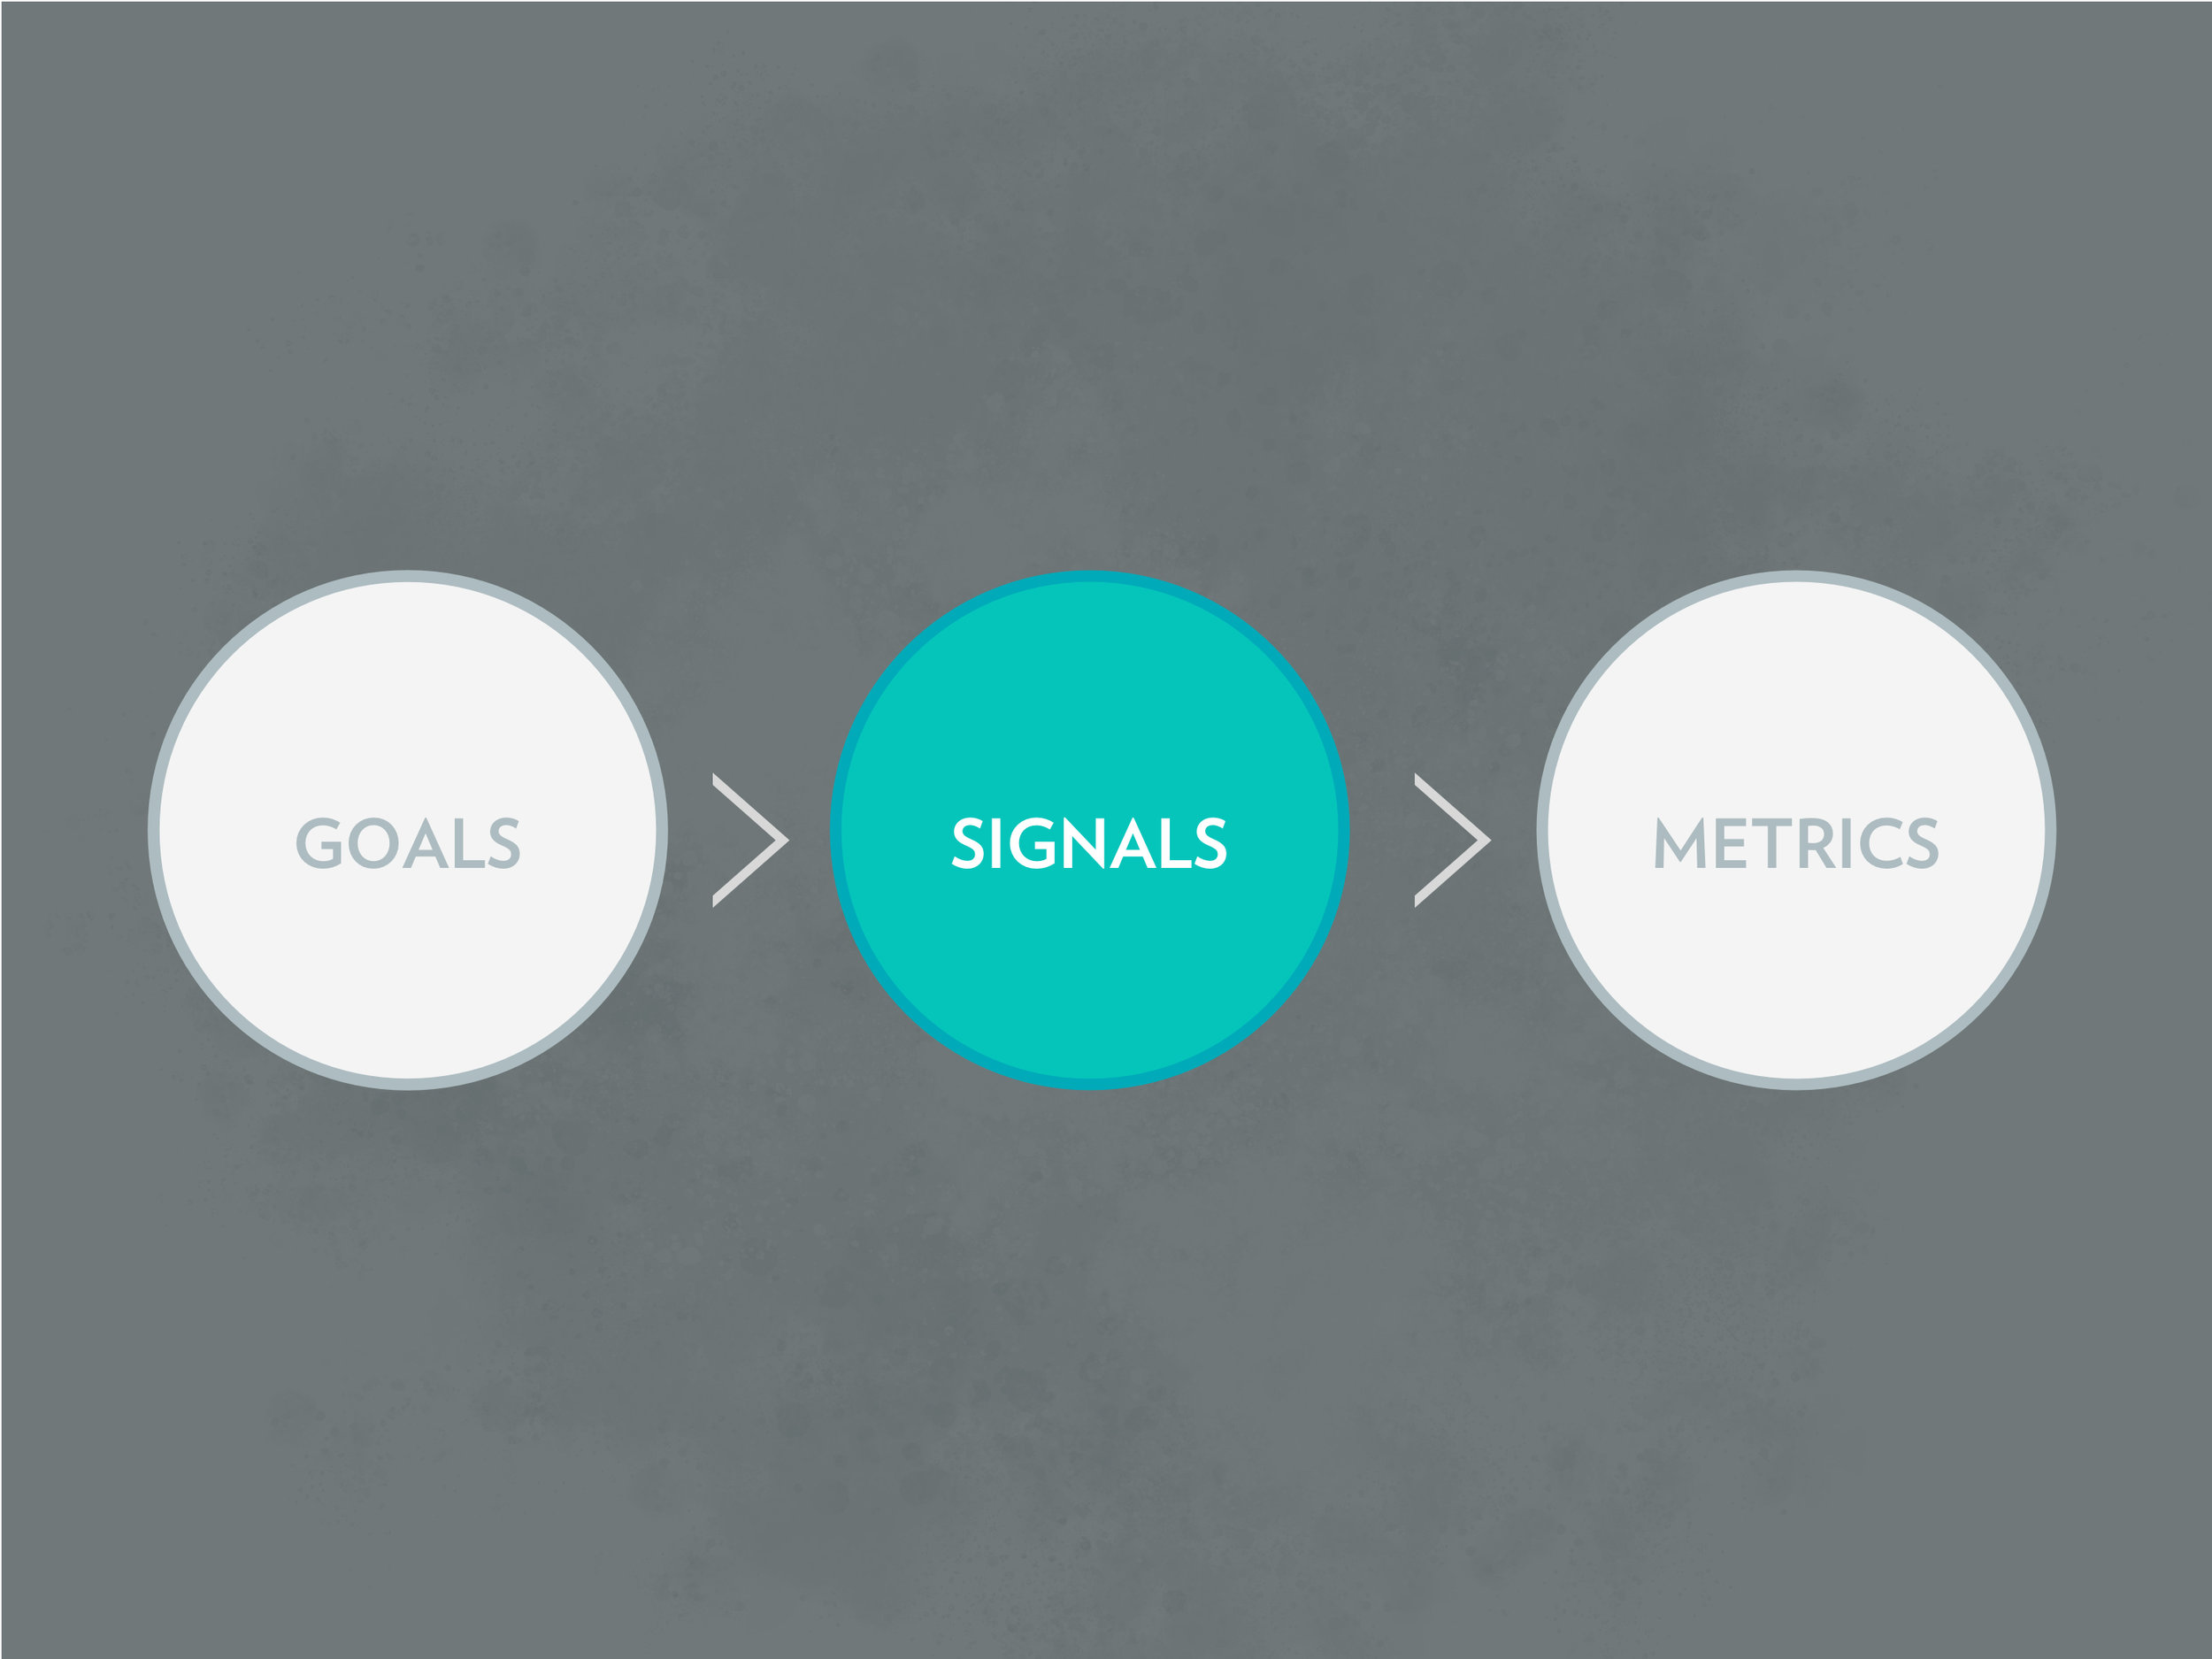 Signals show you're moving towards or away from your UX goals